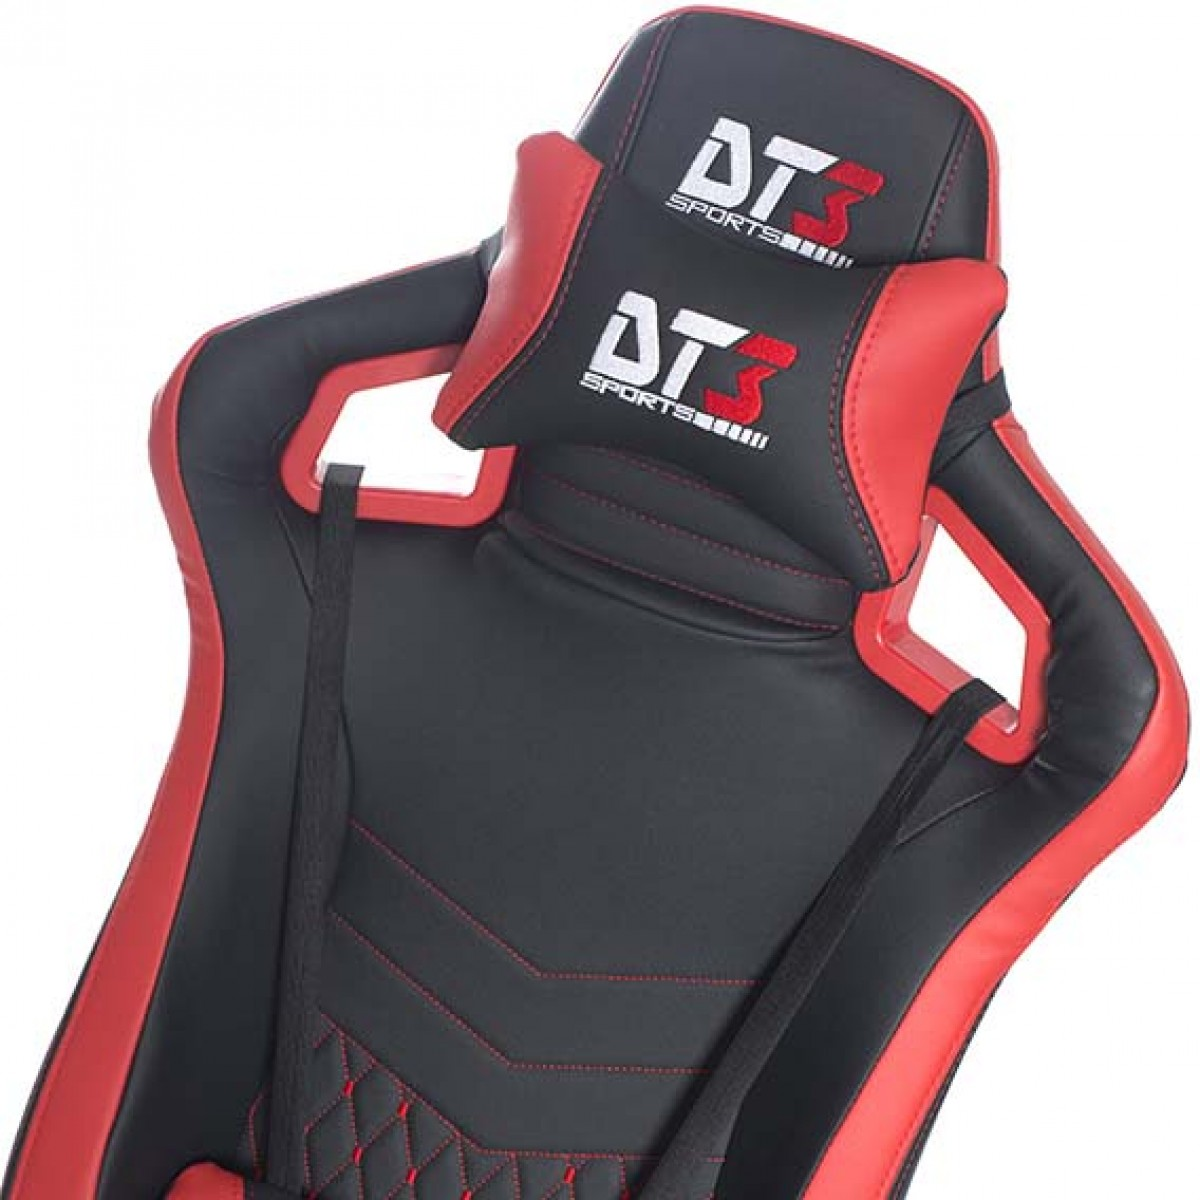 Cadeira Gamer DT3 Sports Elite Ônix Diamond Red